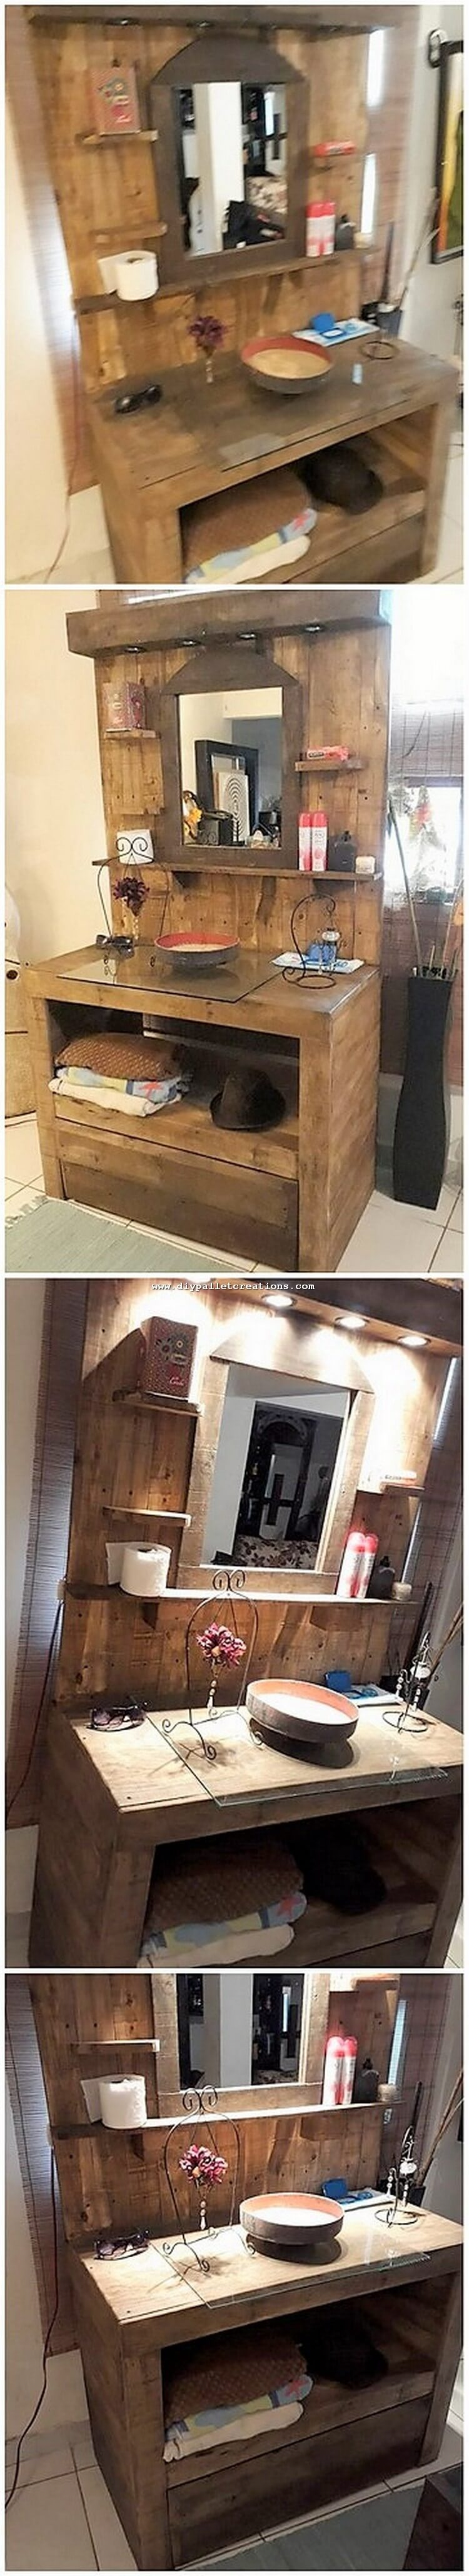 Pallet Sink with Mirror and Cabinet